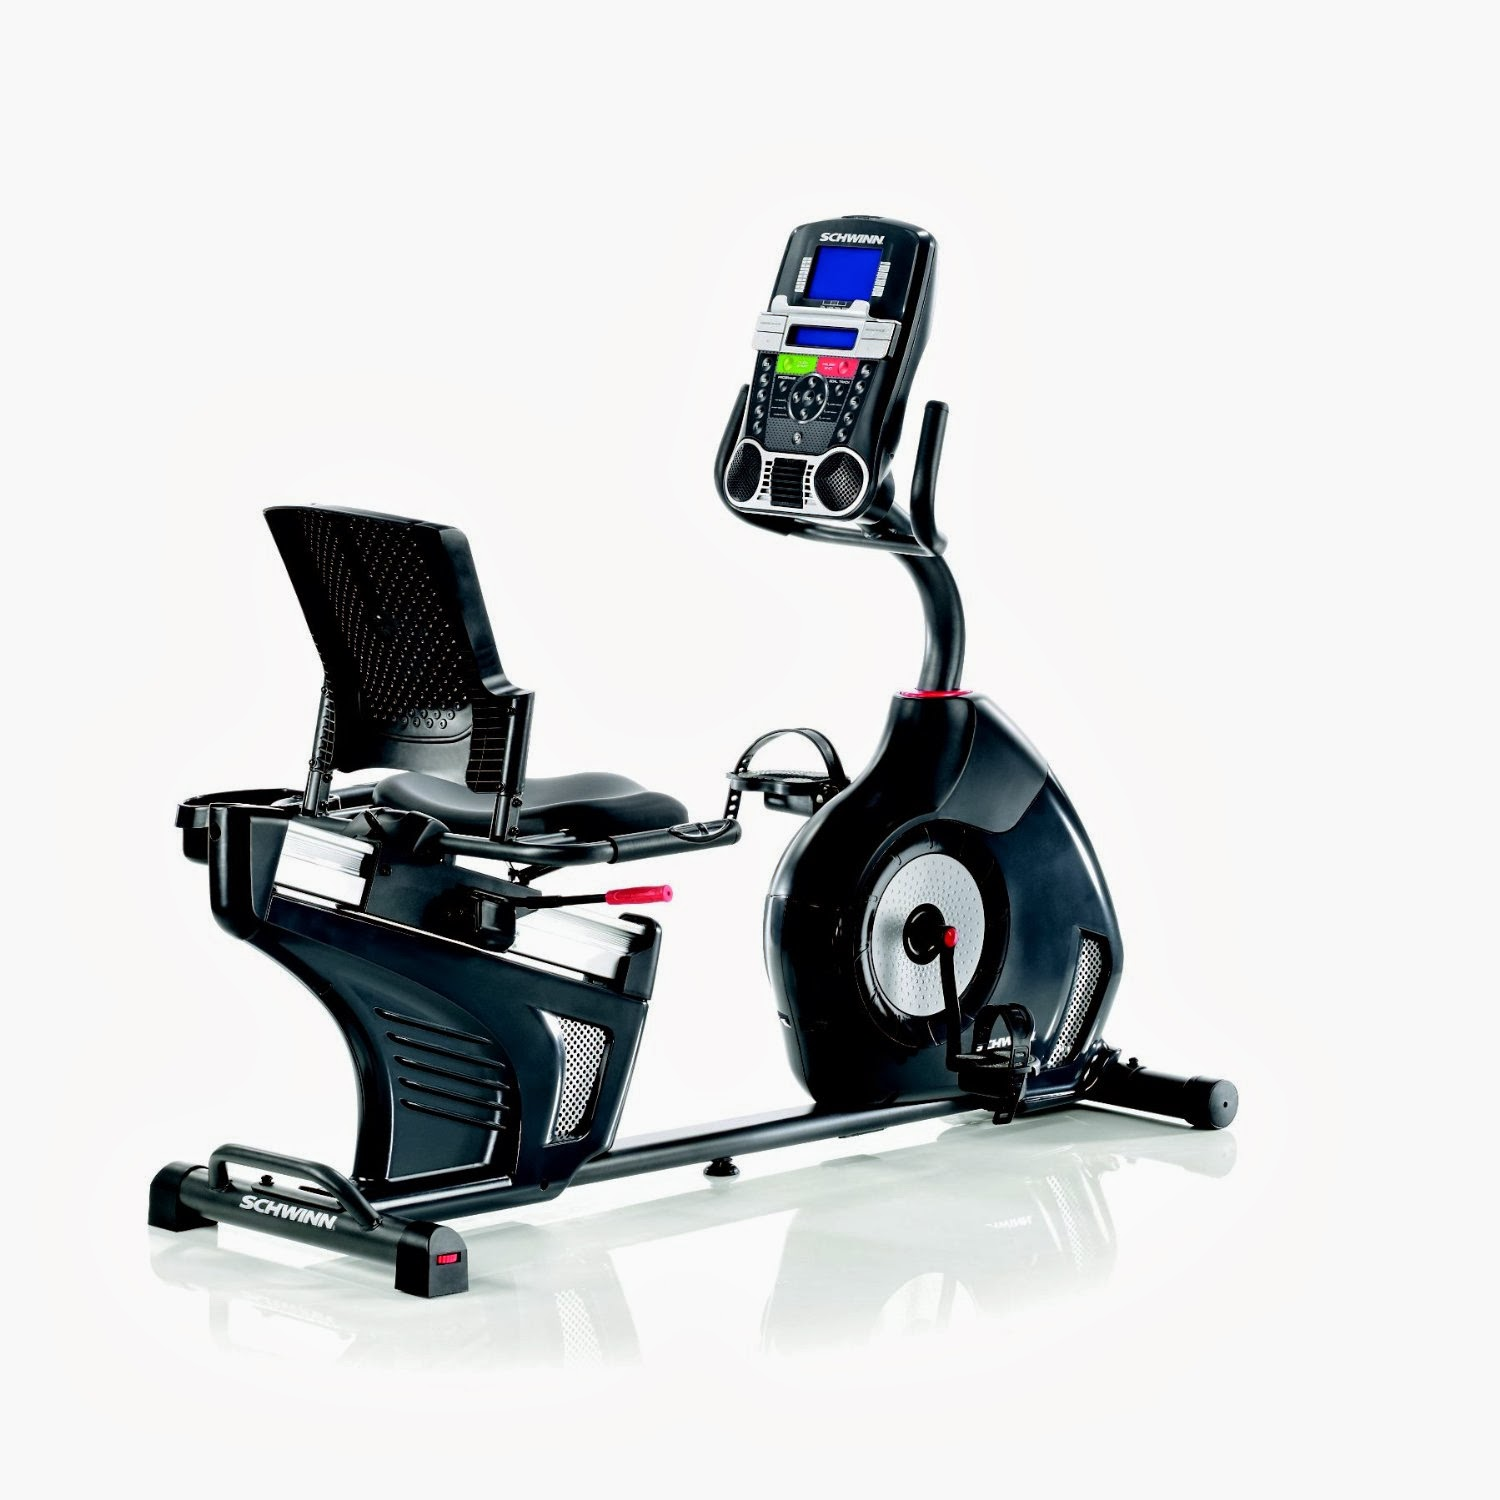 Schwinn 270 Recumbent Bike, picture, review features & specifications, compare with Schwinn 230